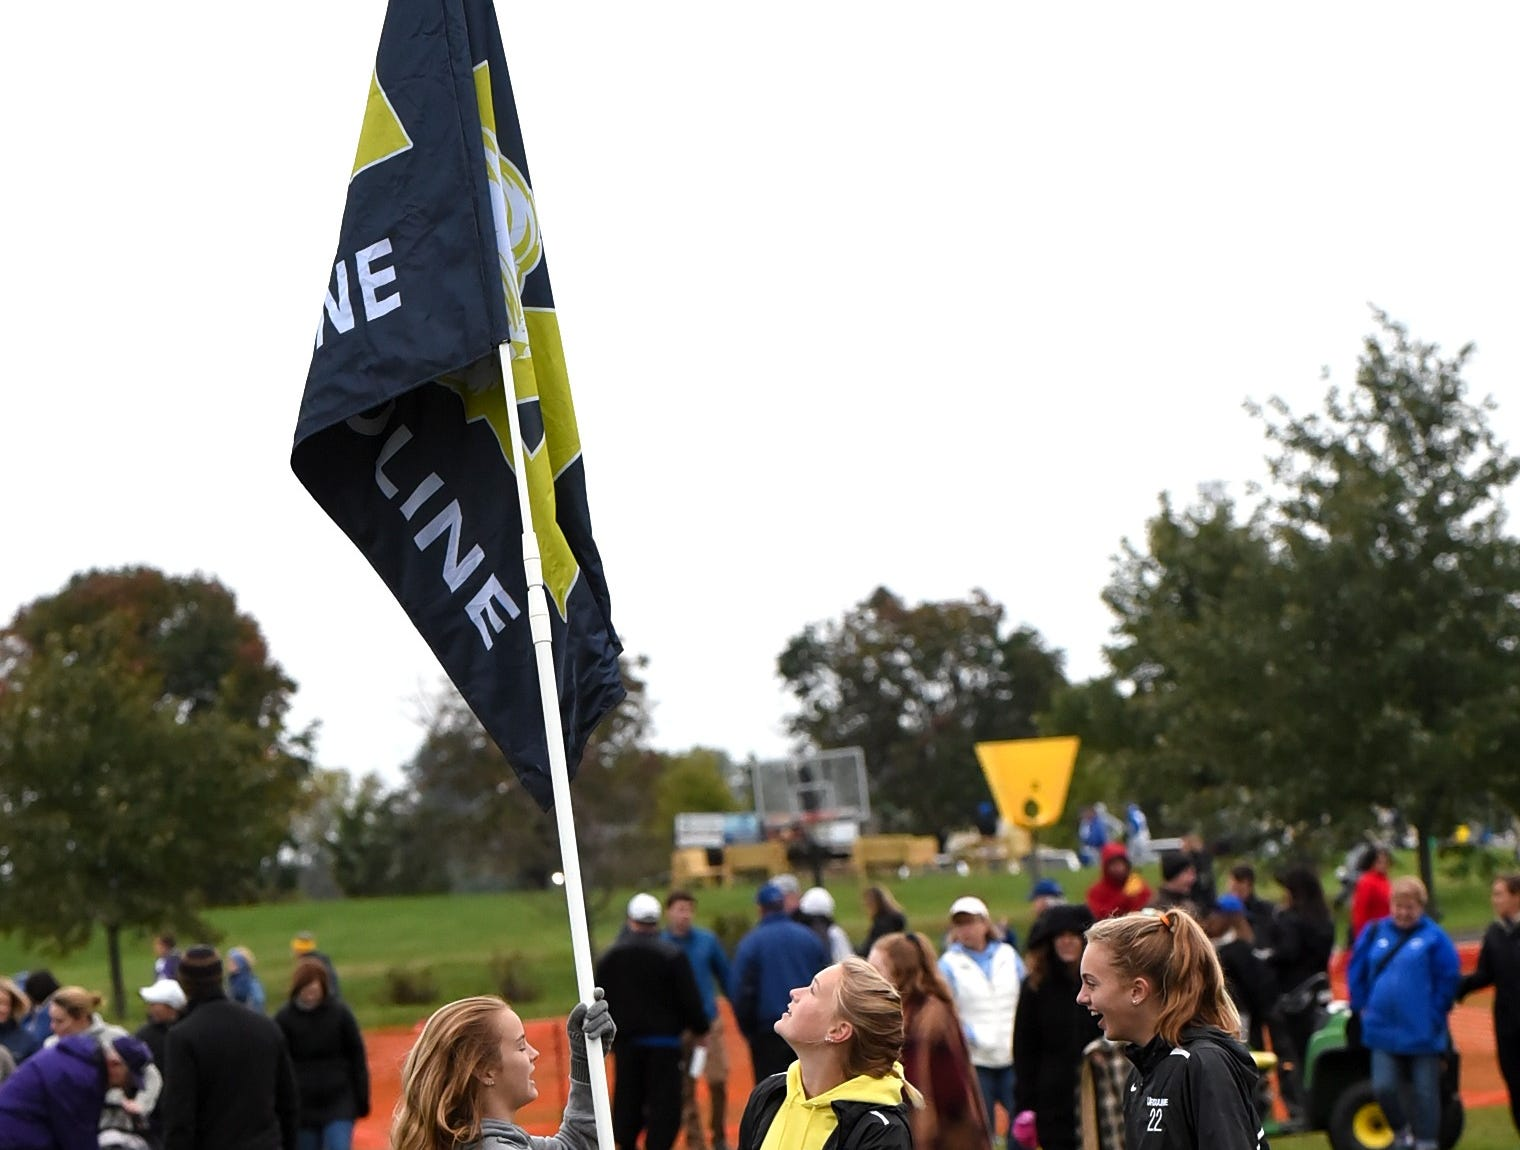 Ursuline Academy students raise the fans flag at the 2018 GCL/GGCL Cross Country Championships, October 13, 2018.